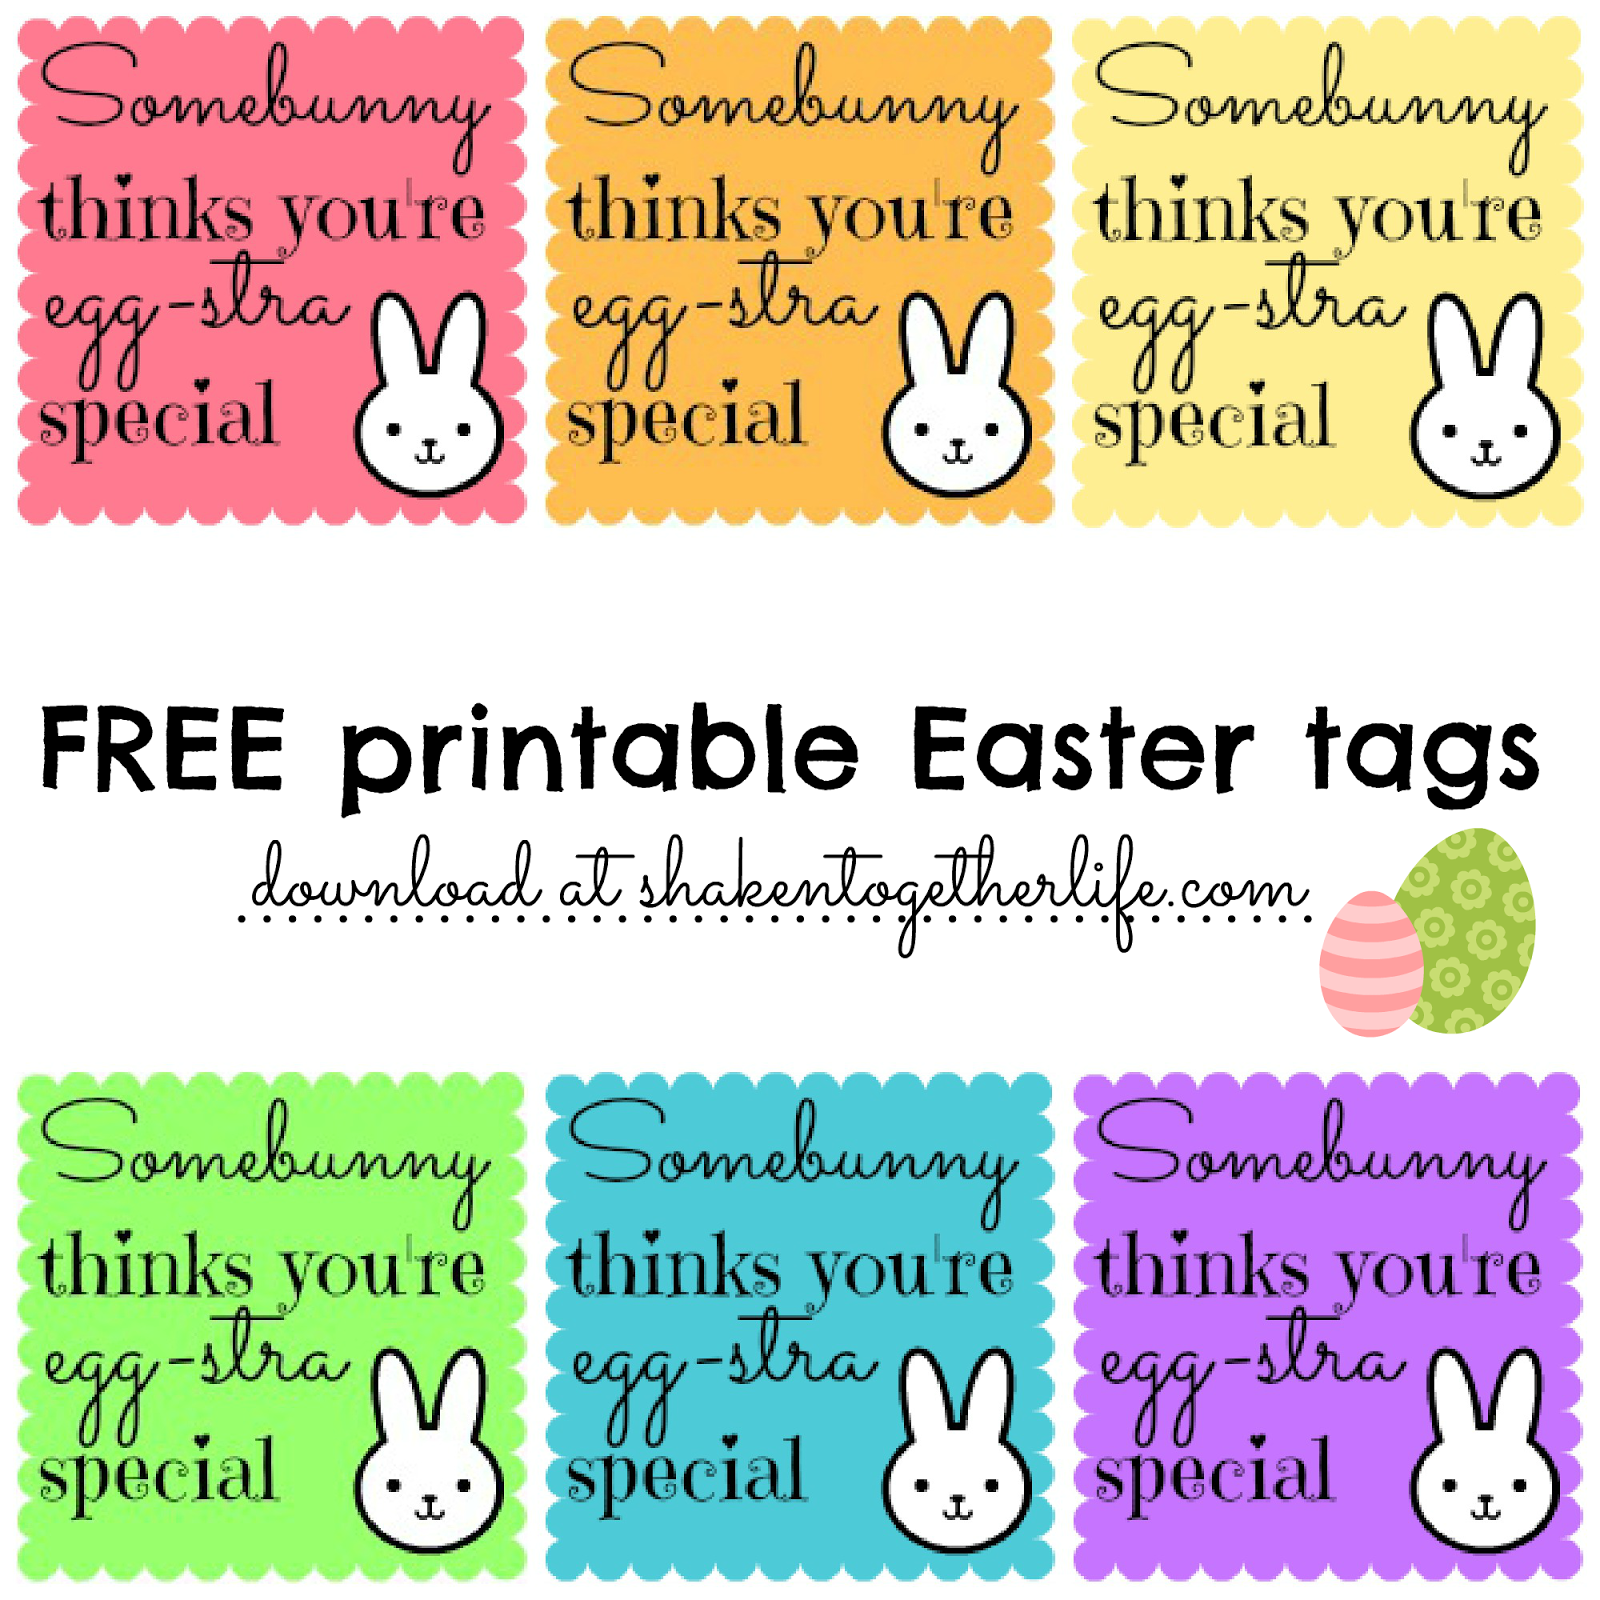 Shaken together create this bunny lip balm gifts for easter somebunny thinks youre egg stra special free printable easter gift tags at shakentogetherlif madi has had a bunny since she was a baby negle